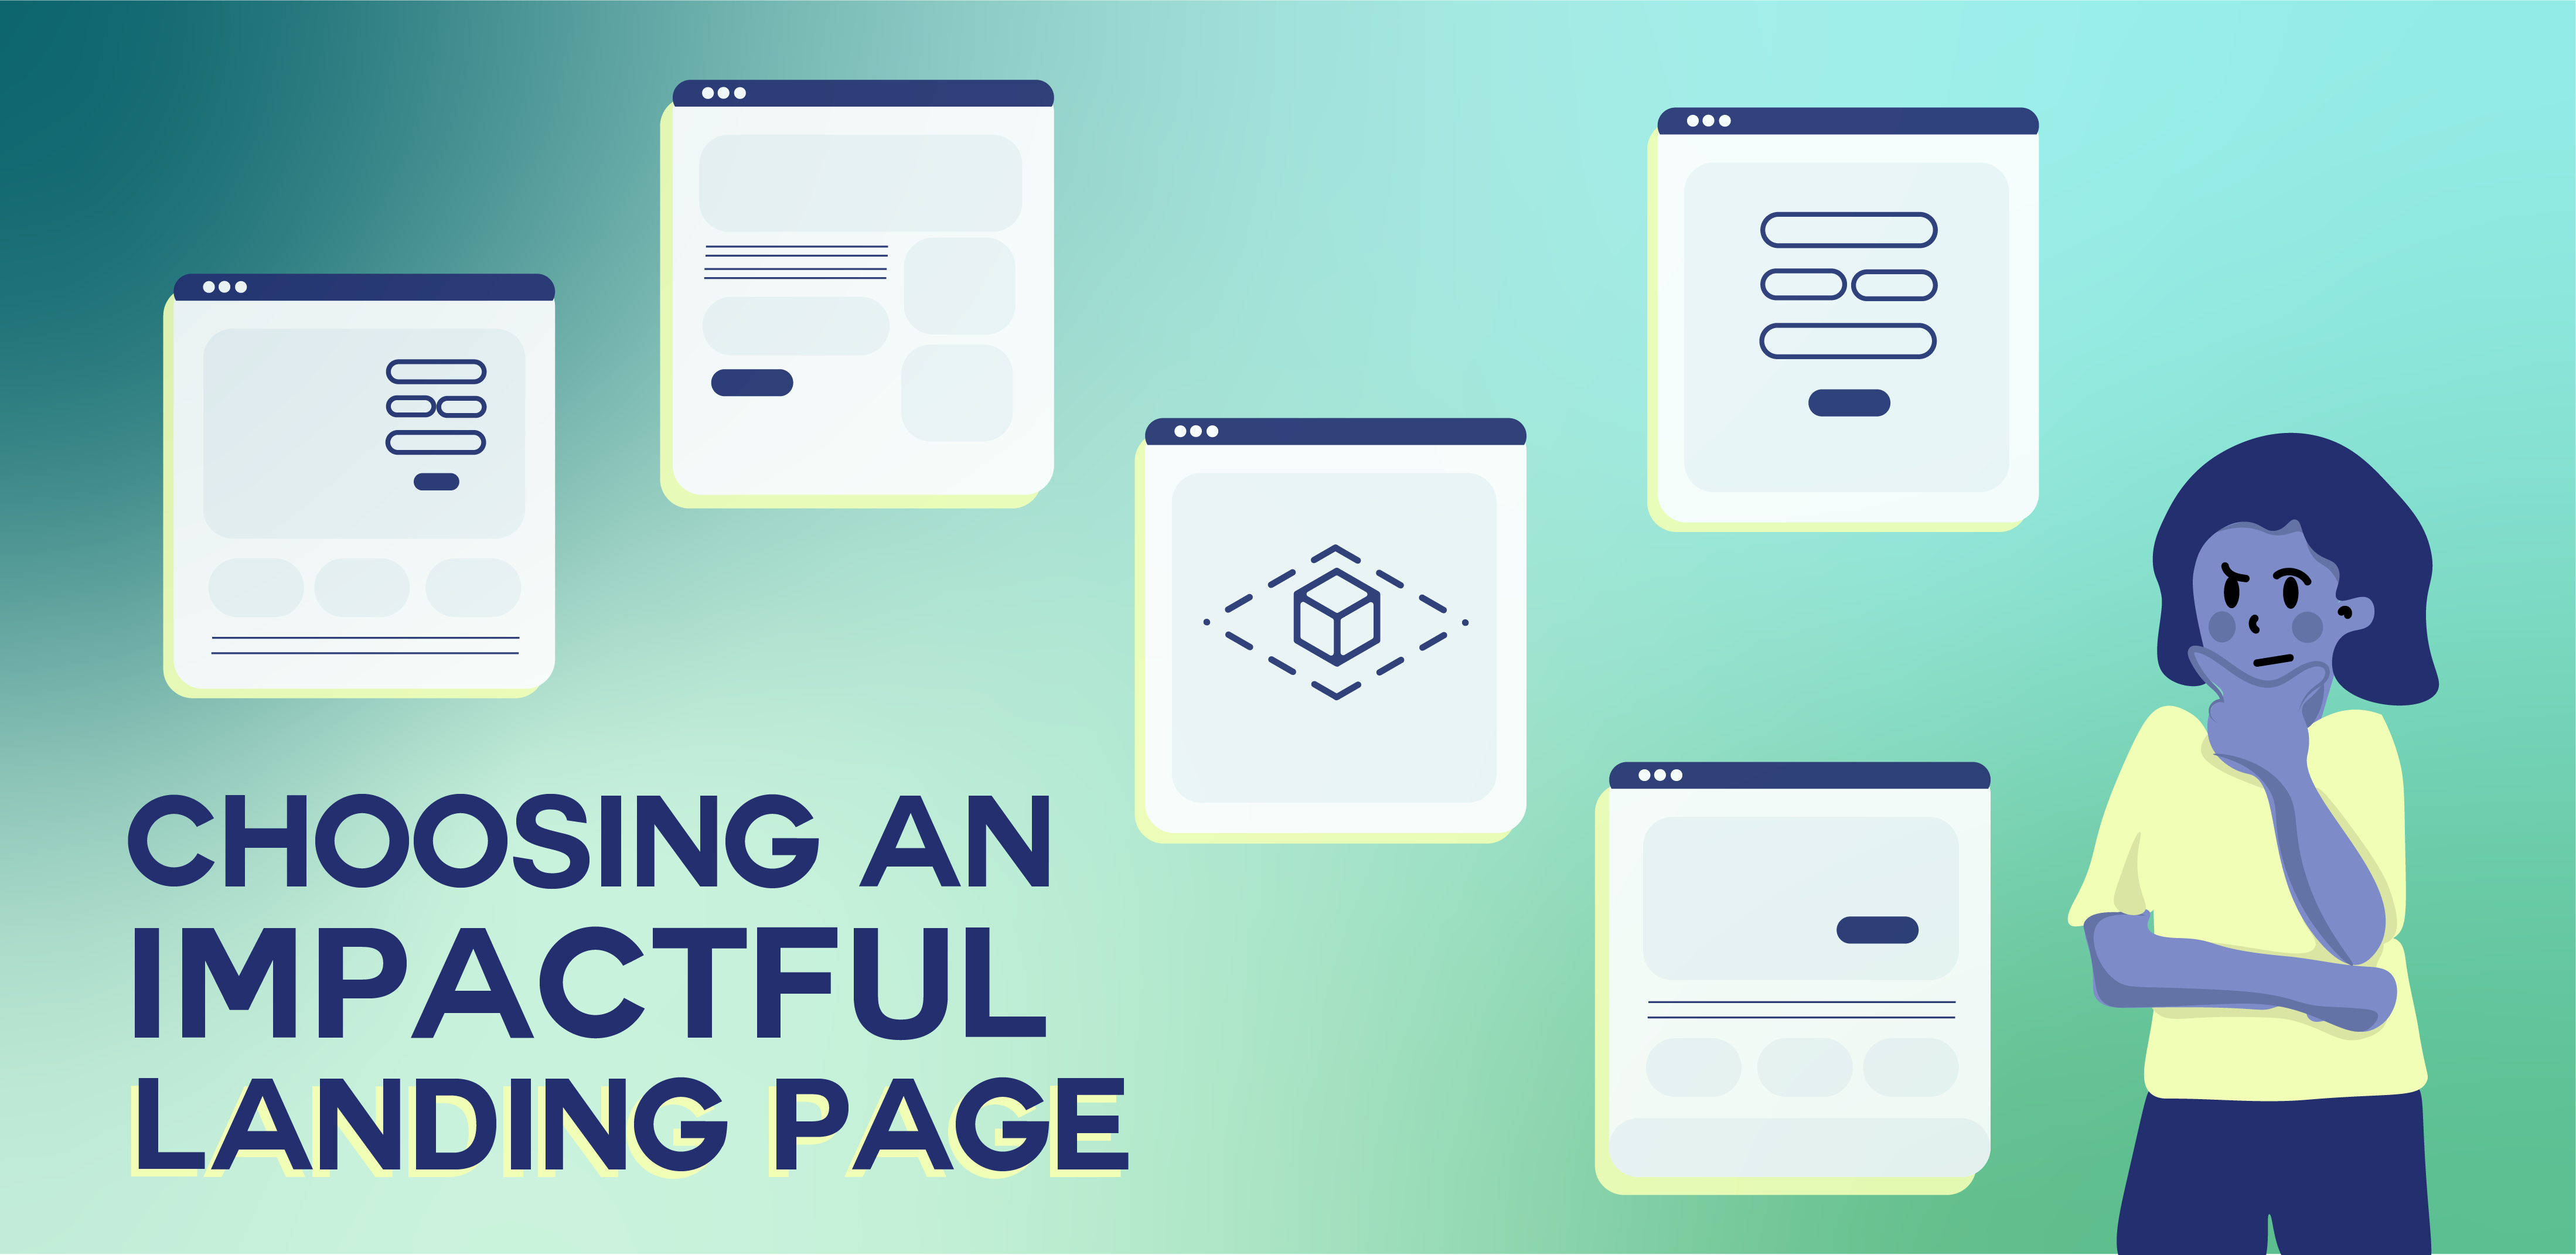 Ever wondered how a landing page impacts web performance? Don't scroll past this!